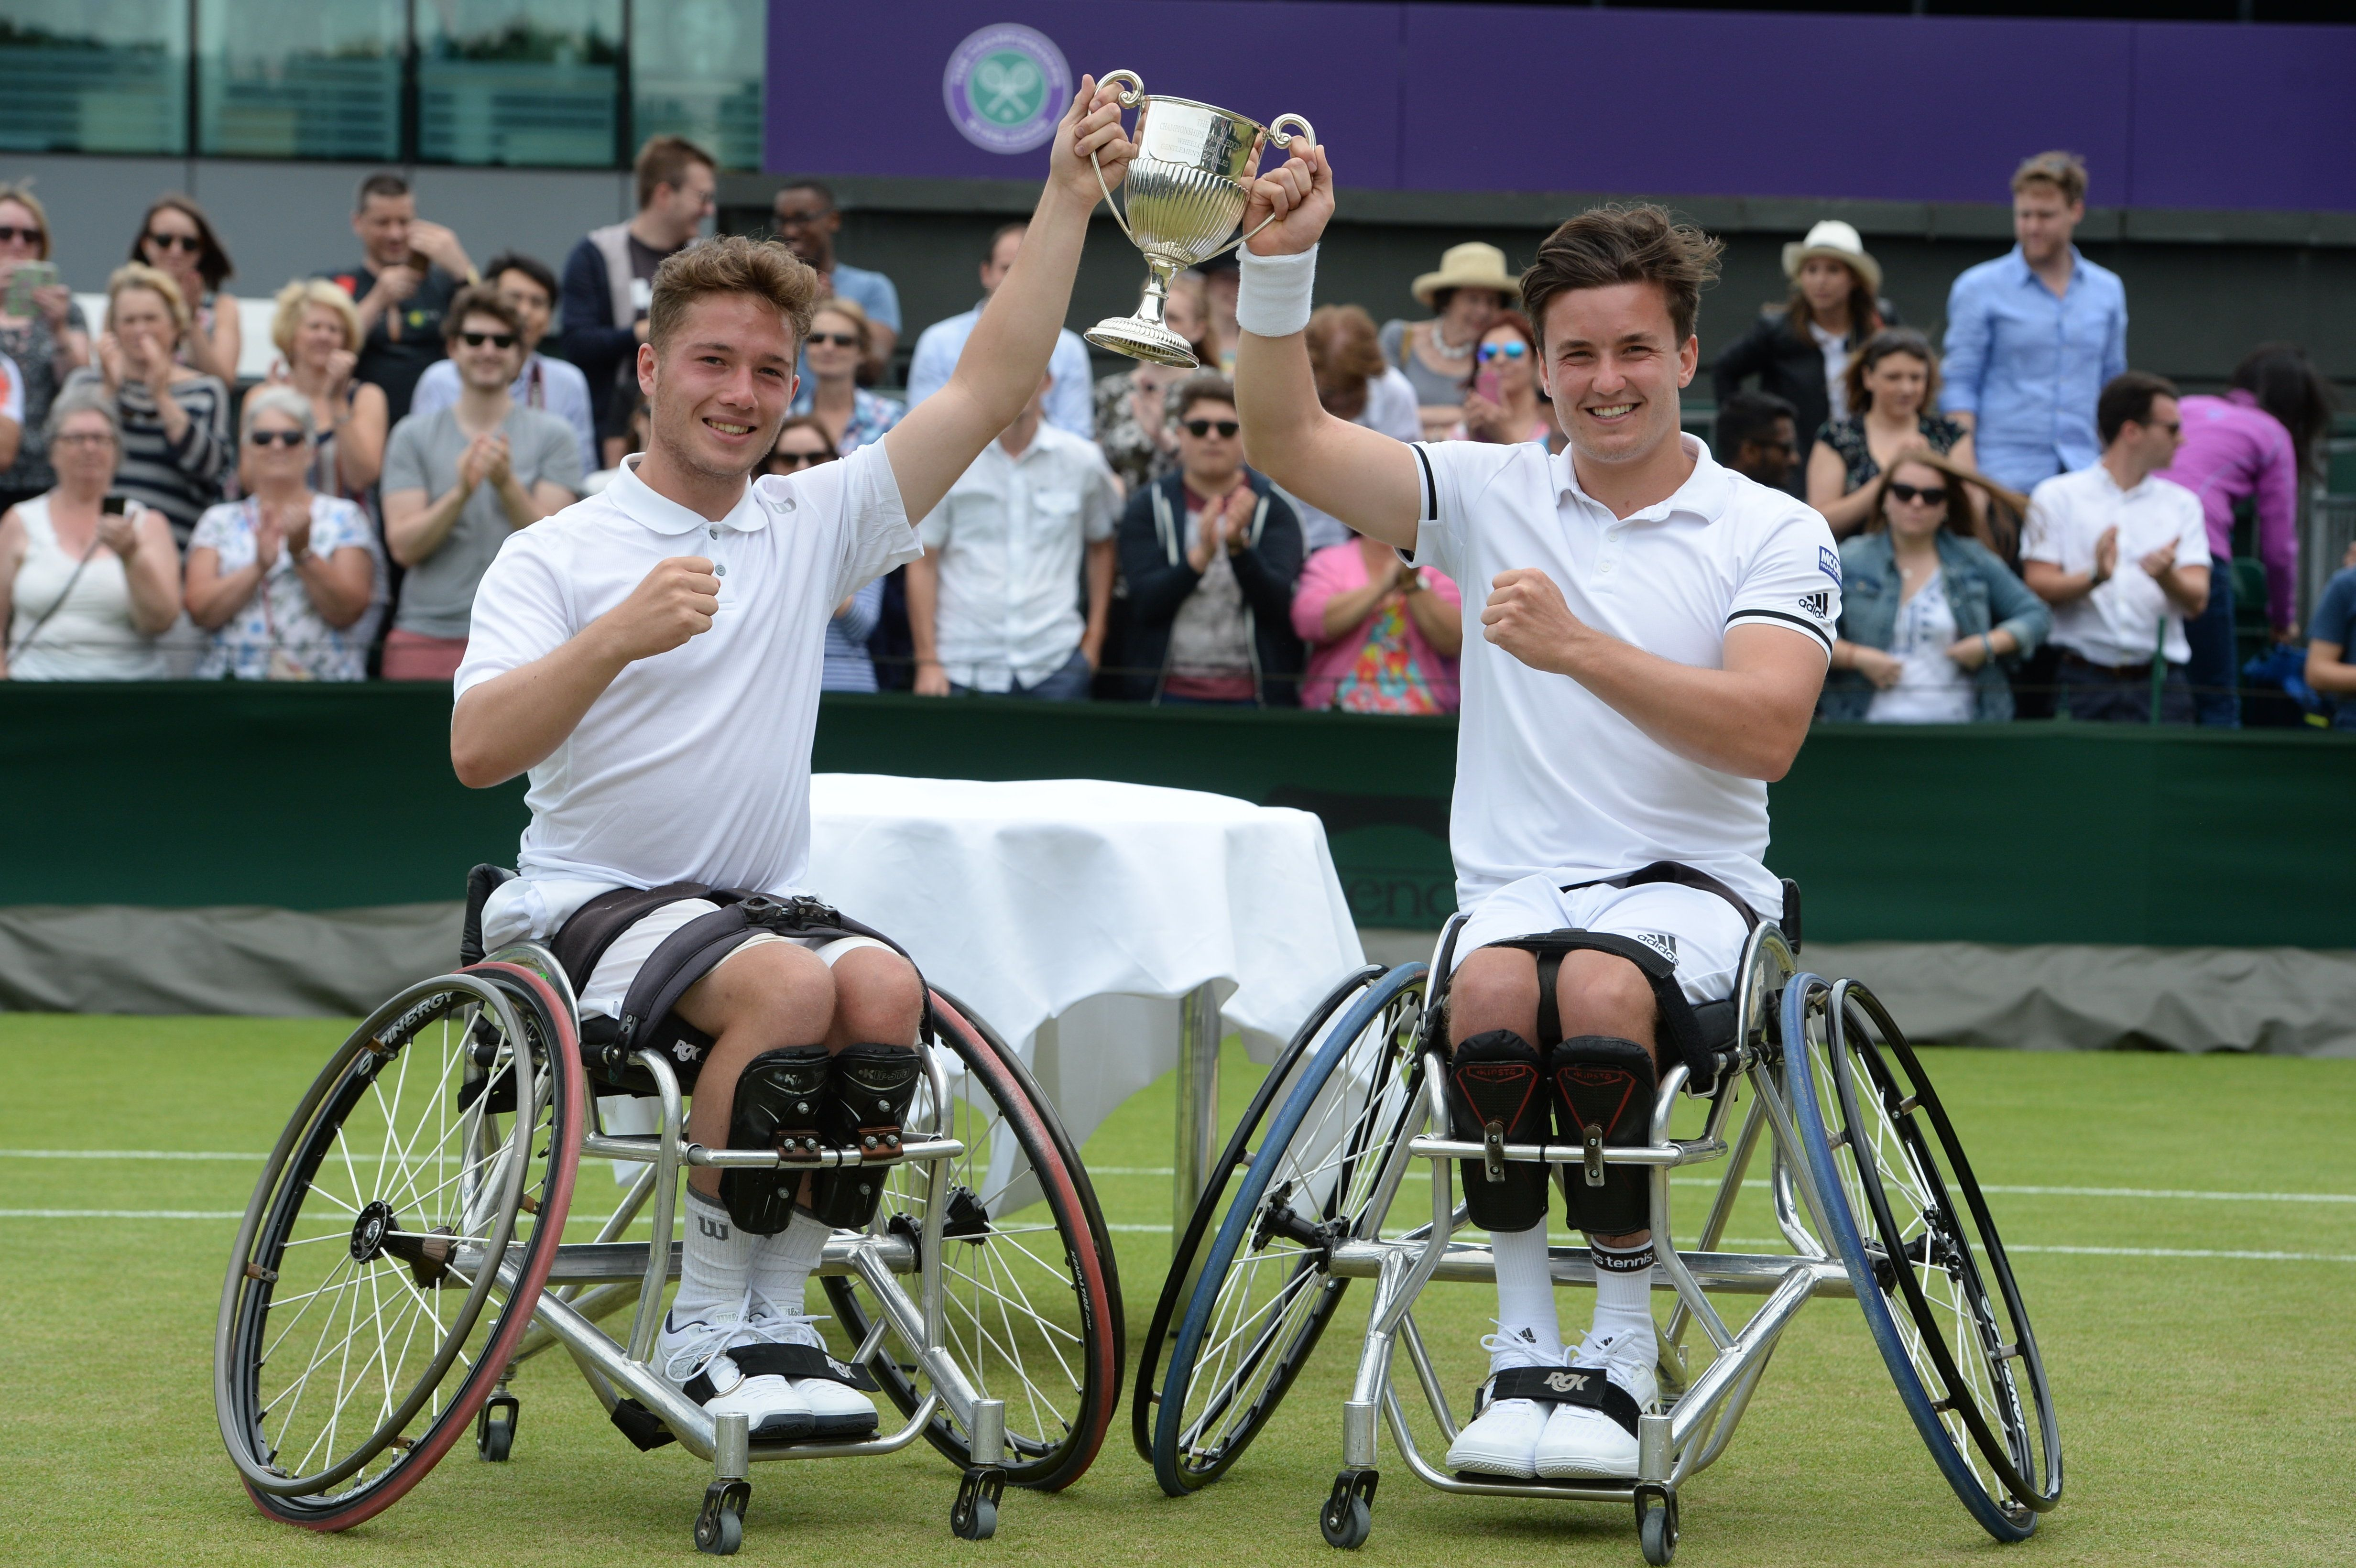 Men's Wimbledon Wheelchair Tennis Doubles Won By Brits For The Very First